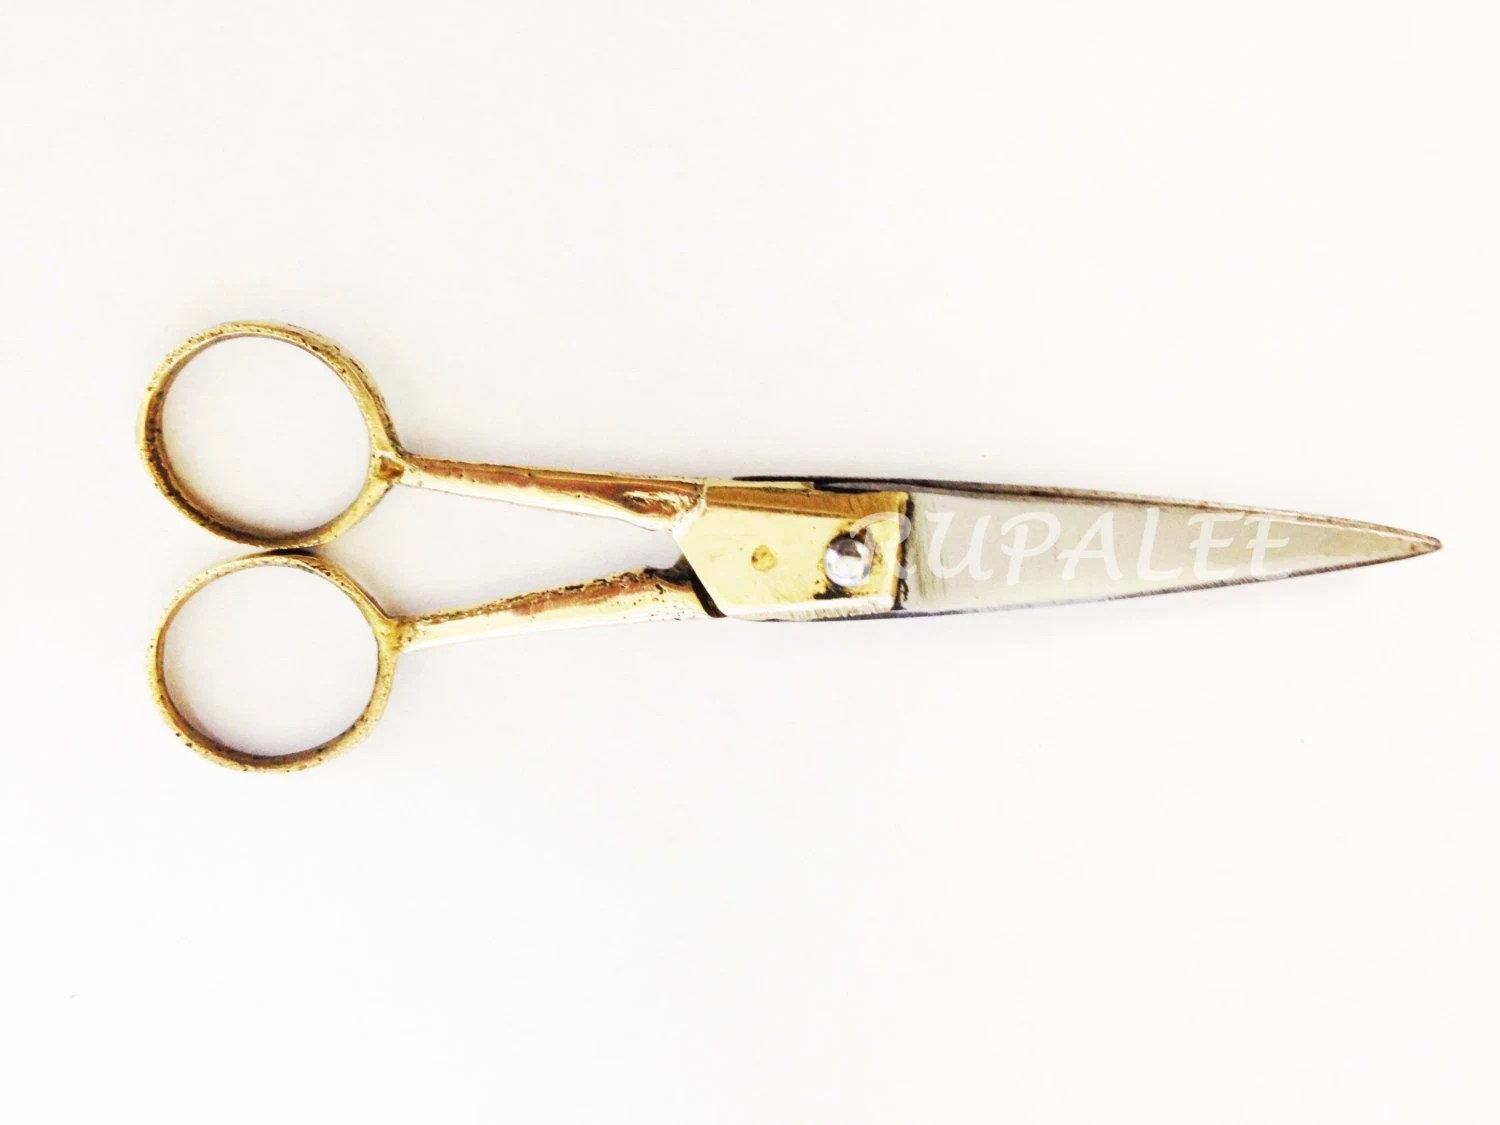 Handmade Heirloom Quality Scissors For Embroidery Snipping